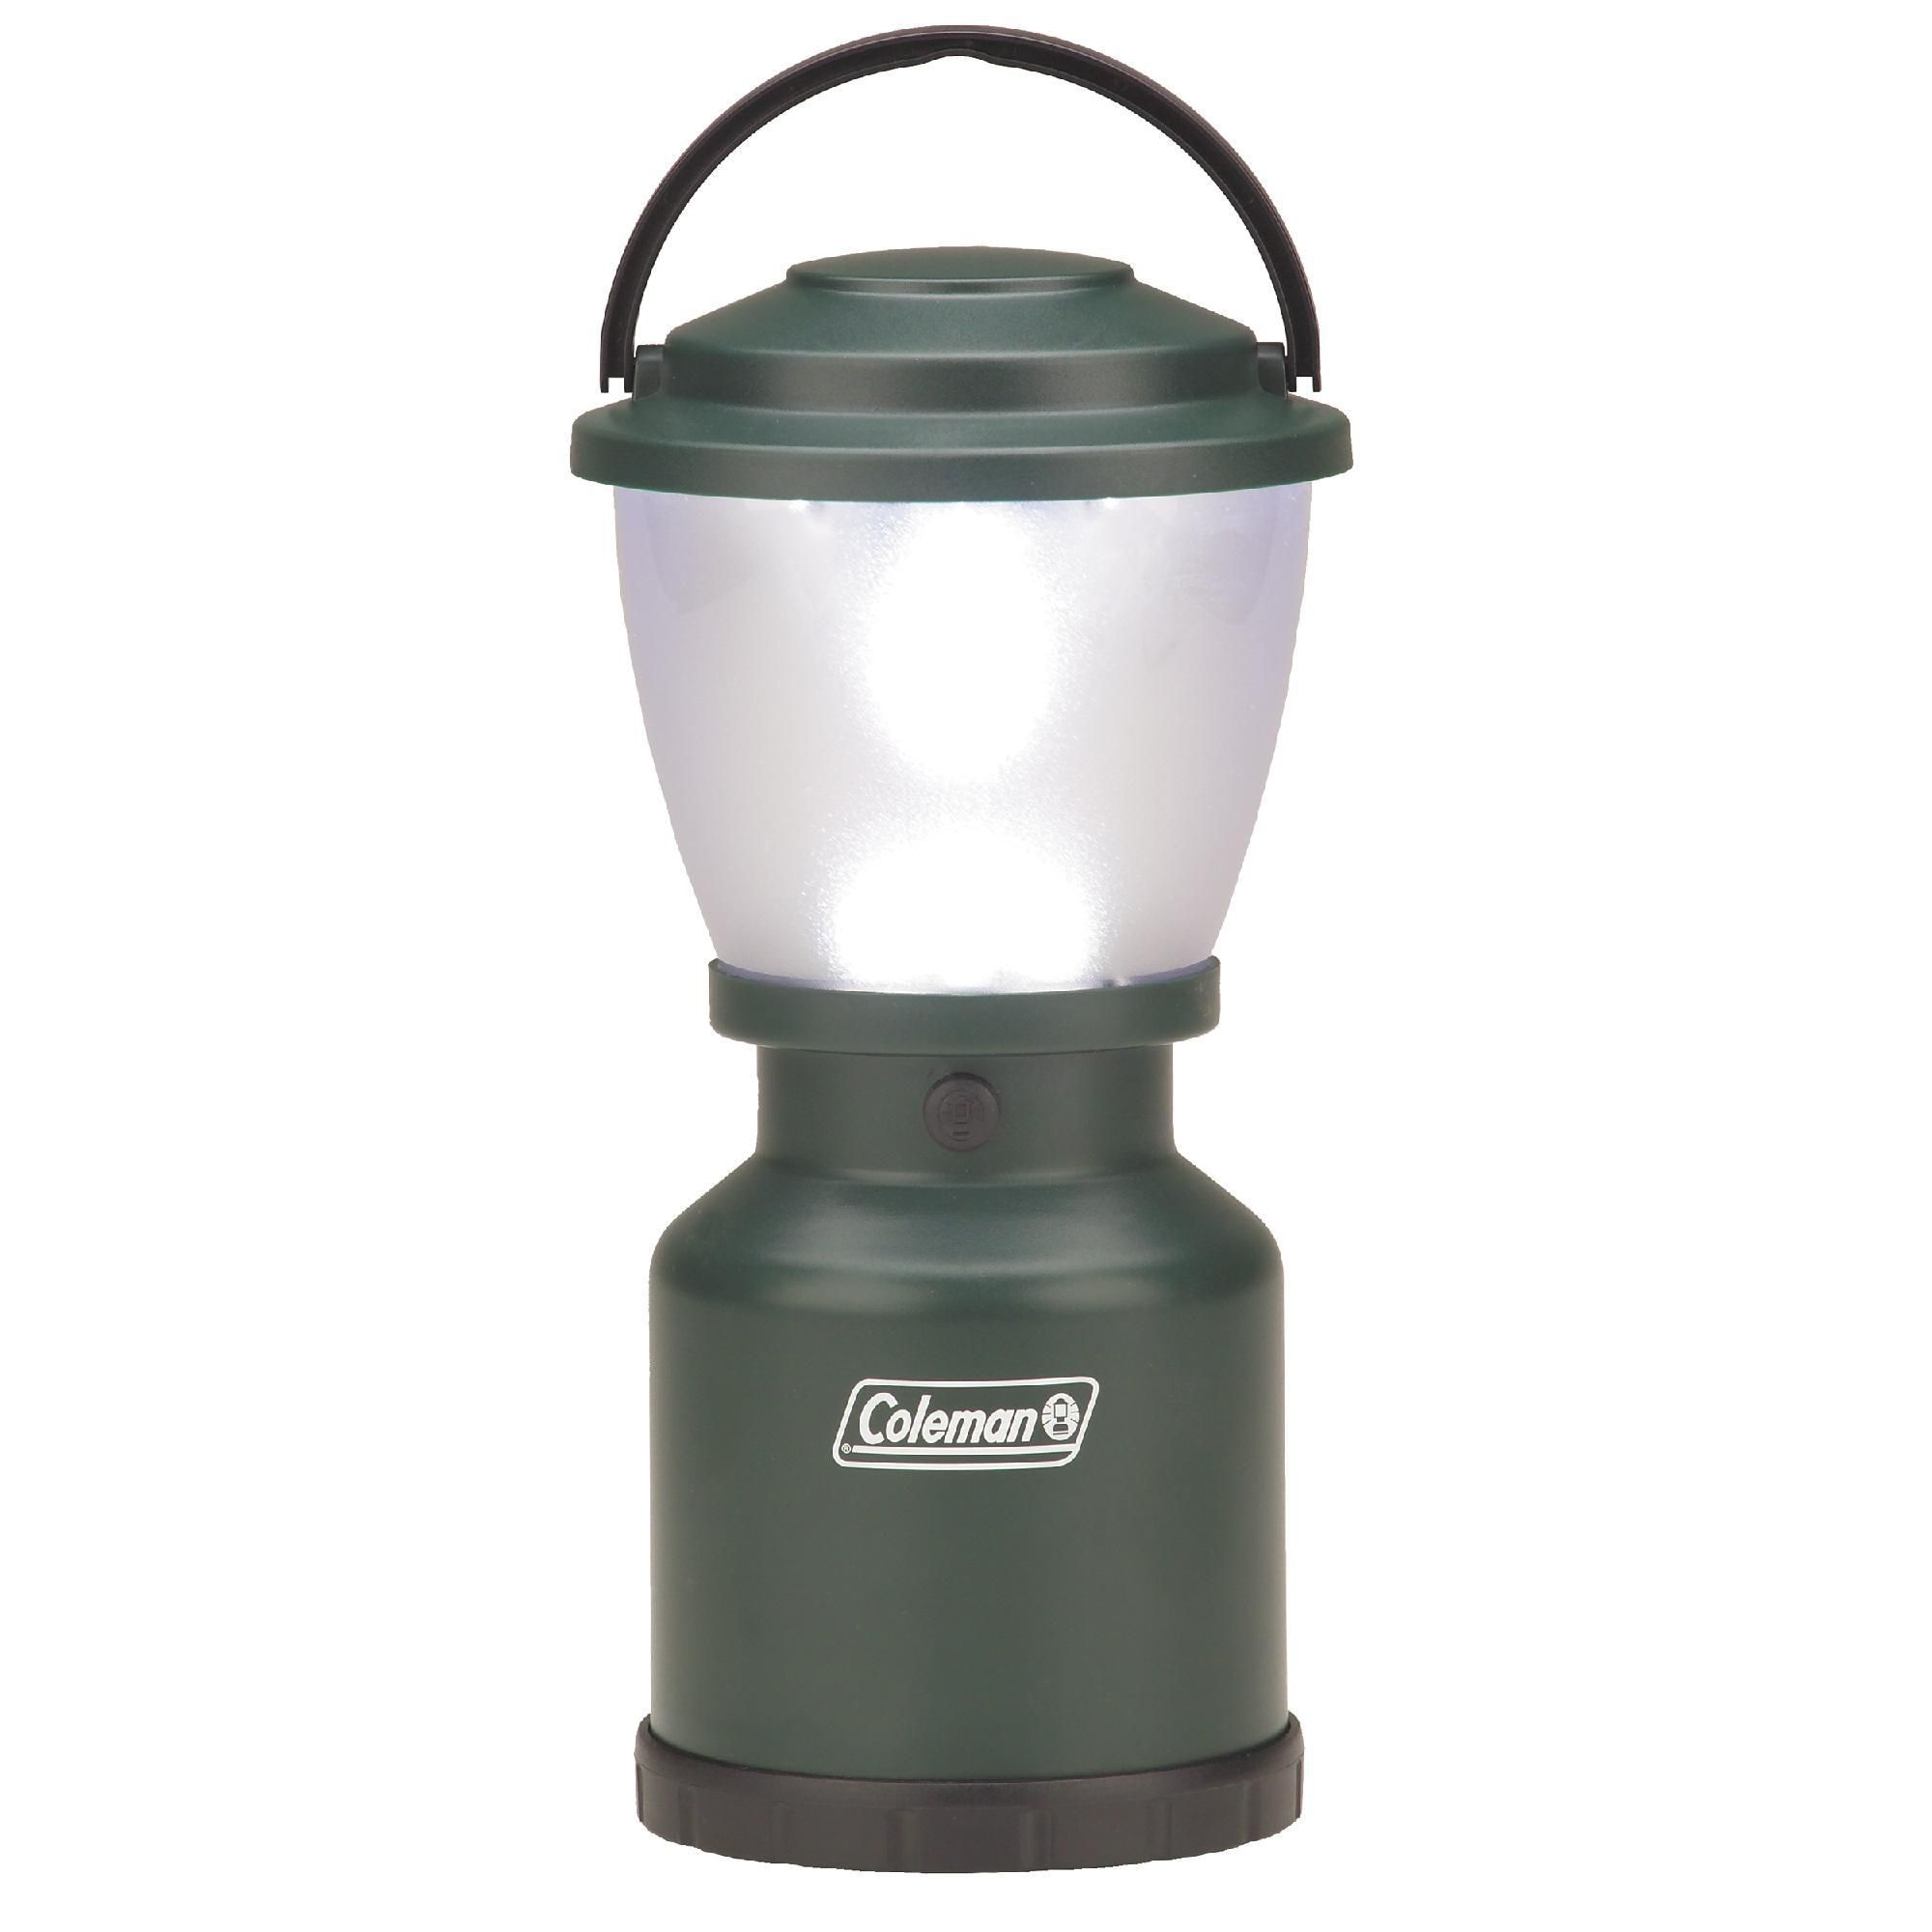 LED Camp Lantern 4D | Products | Pinterest | Led camping lantern and Camp Lighting Ideas Pinterest on pinterest outside lighting, pinterest books, pinterest homemade decor, pinterest tips, creative solar light ideas, pinterest from trash to treasure, pinterest wall lighting, pinterest lighting design, pinterest wall decor, pinterest candles, pinterest patio lighting, pinterest glass, pinterest projects using mason jars, pinterest pendant lighting,